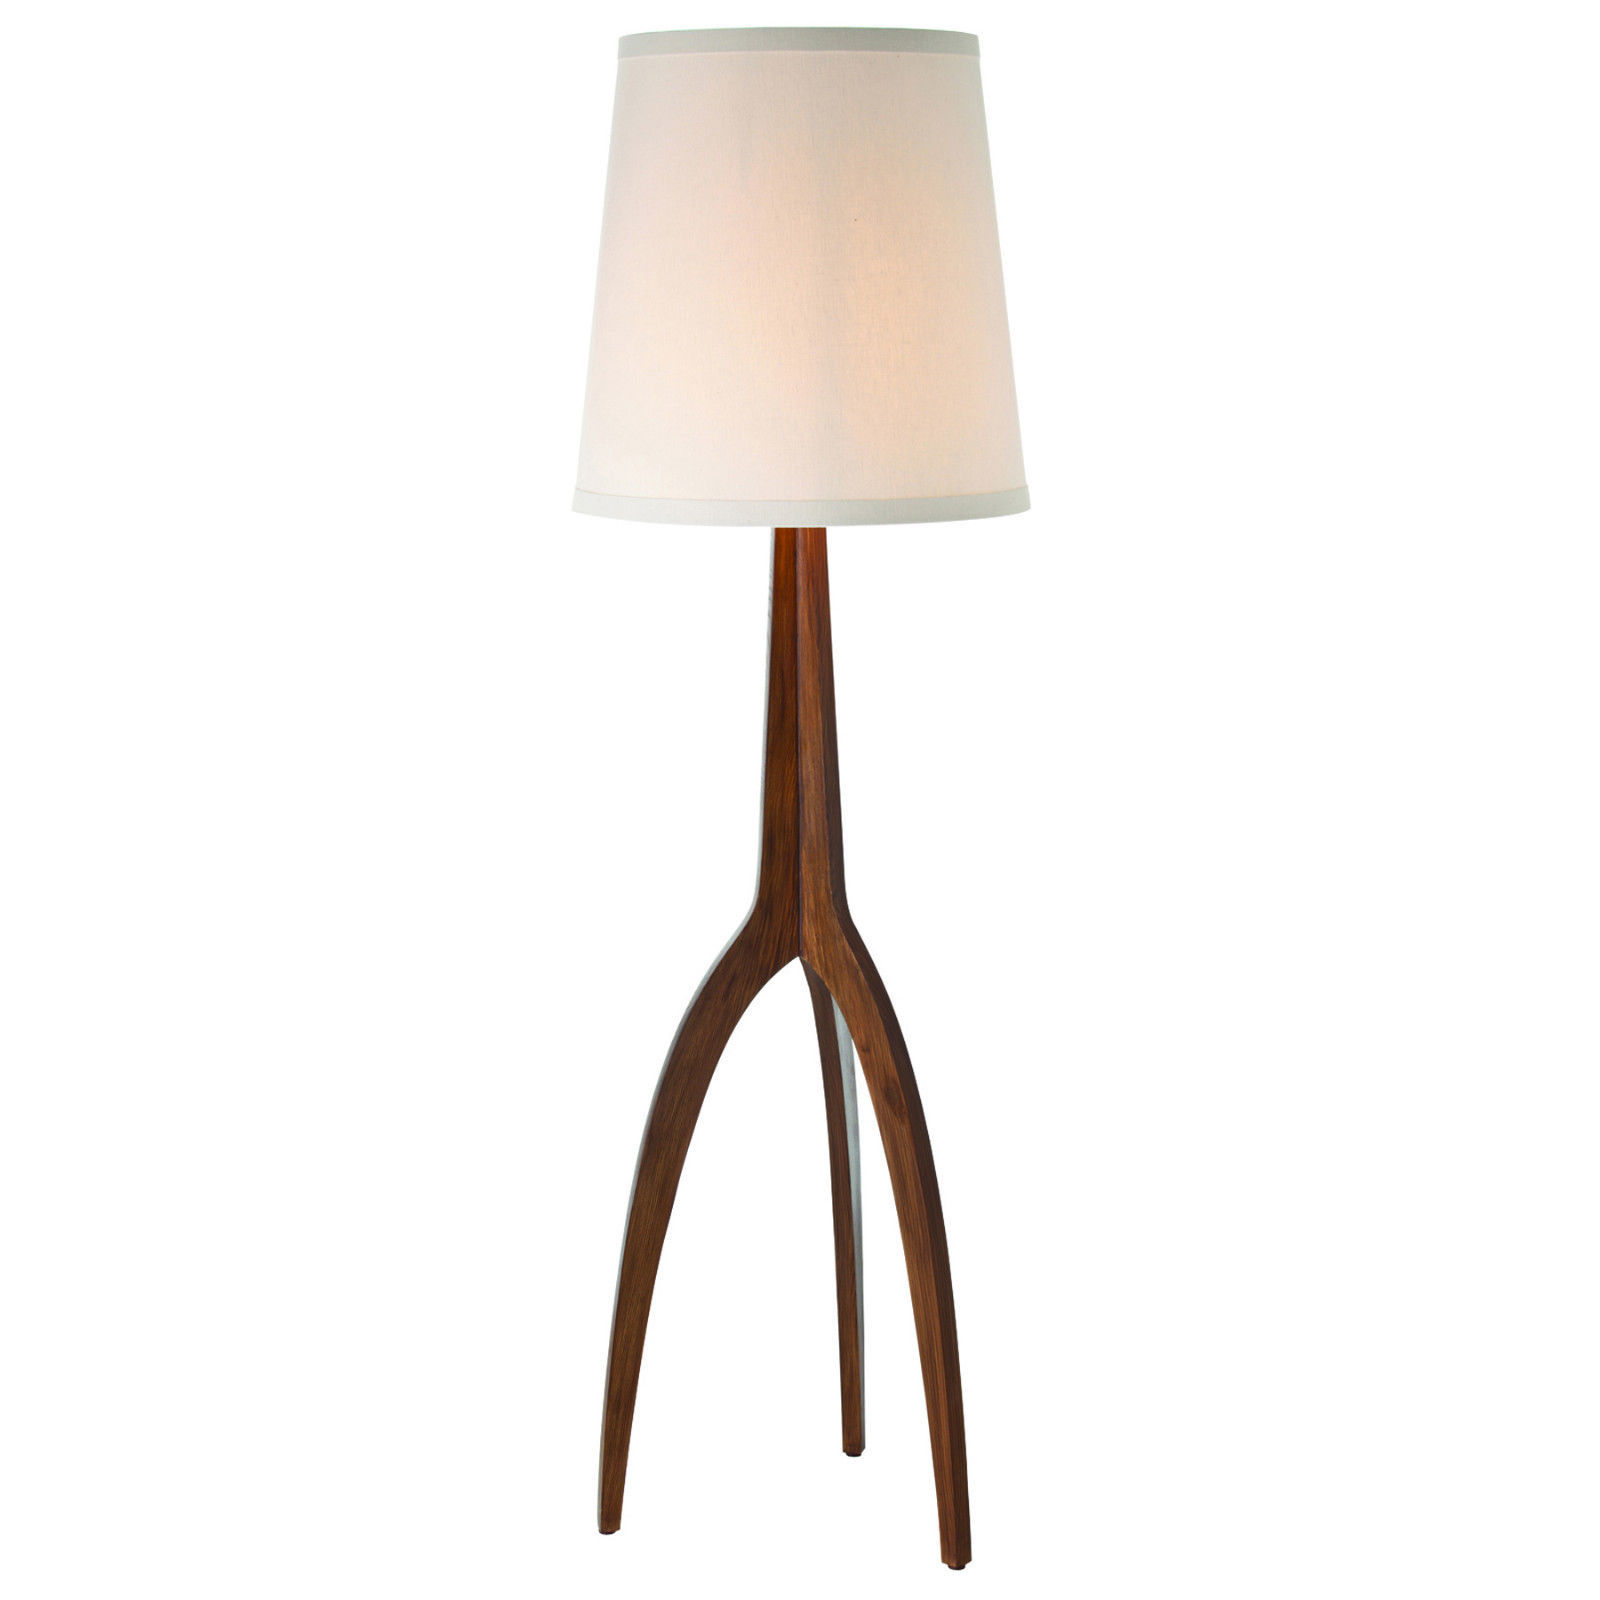 Tripod walnut finished wood mid century modern arteriors for Make wooden floor lamp